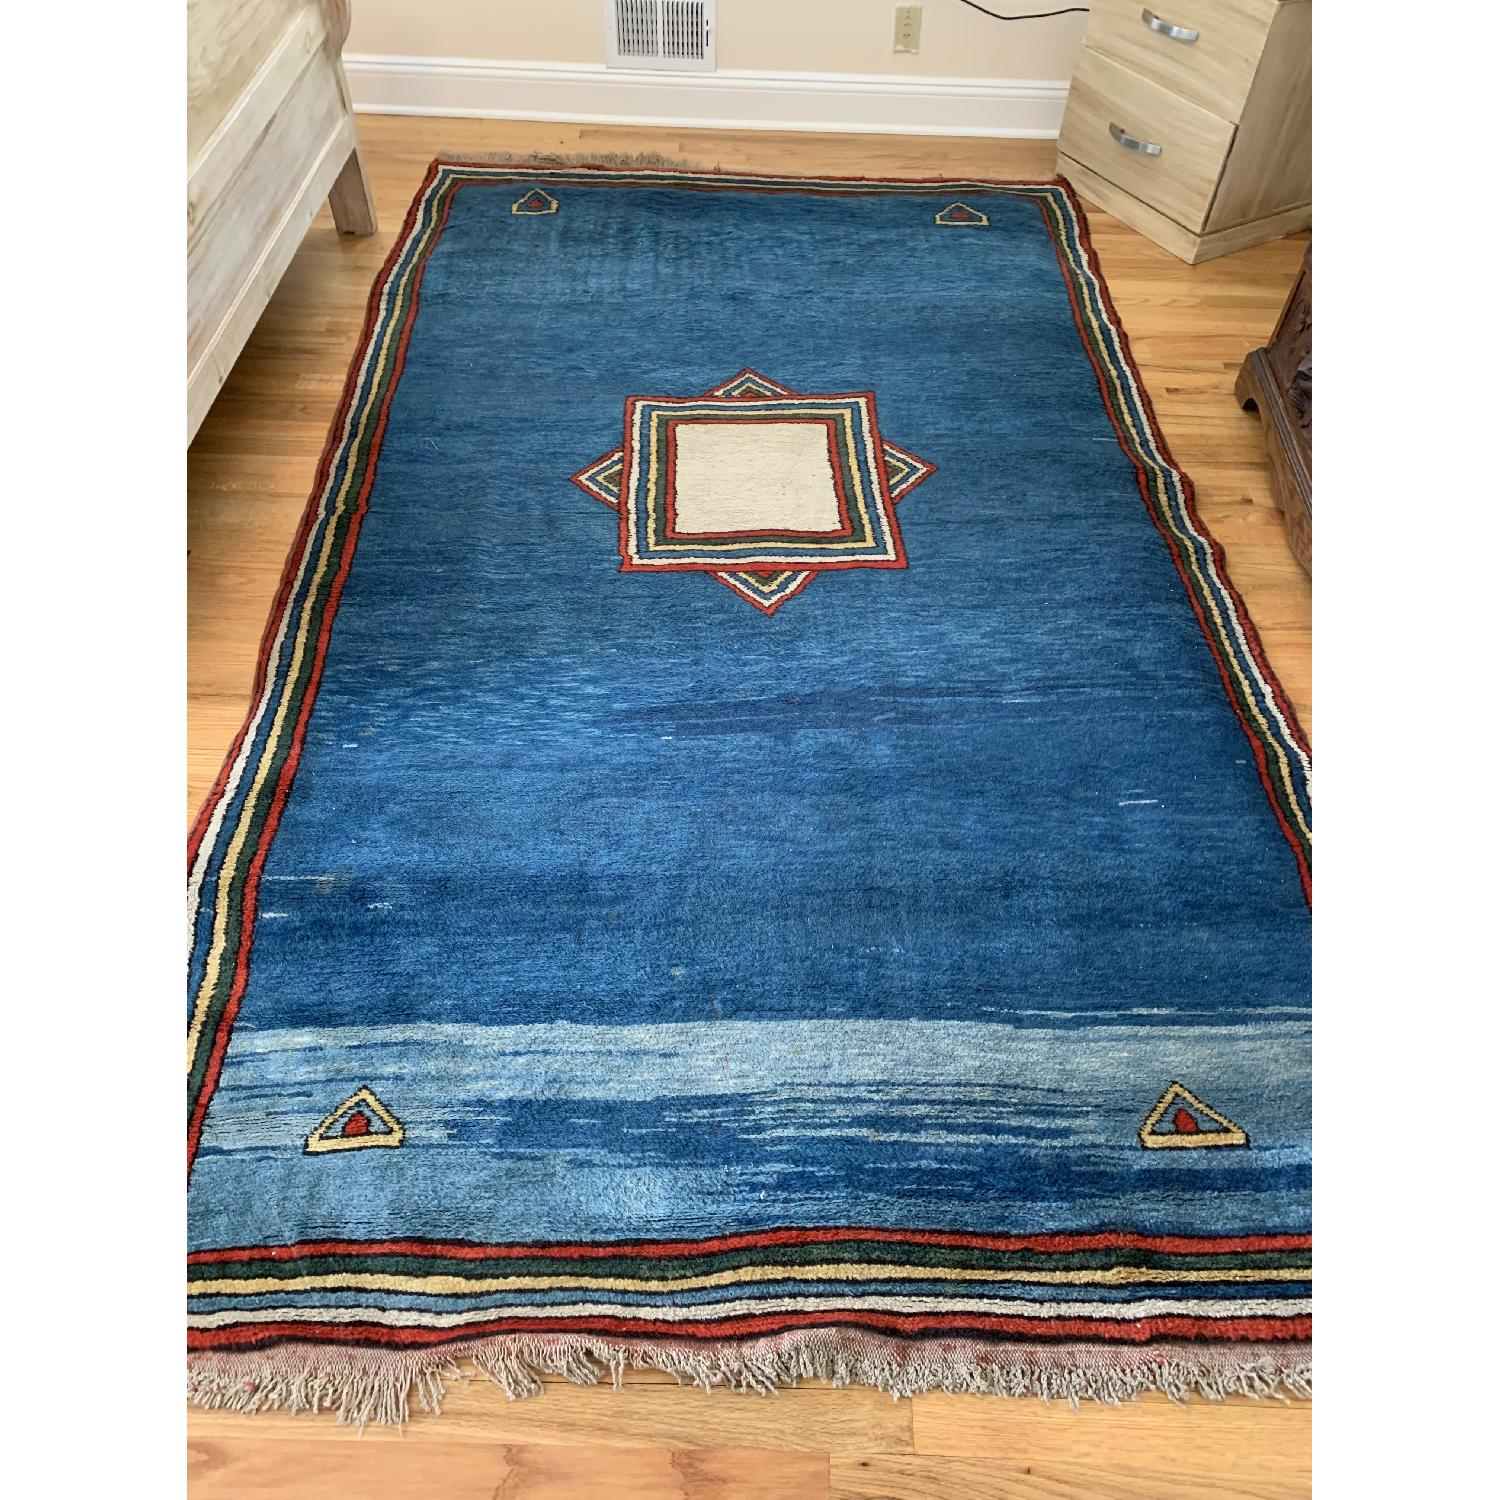 Persian Area Rug in Contemporary Design-1